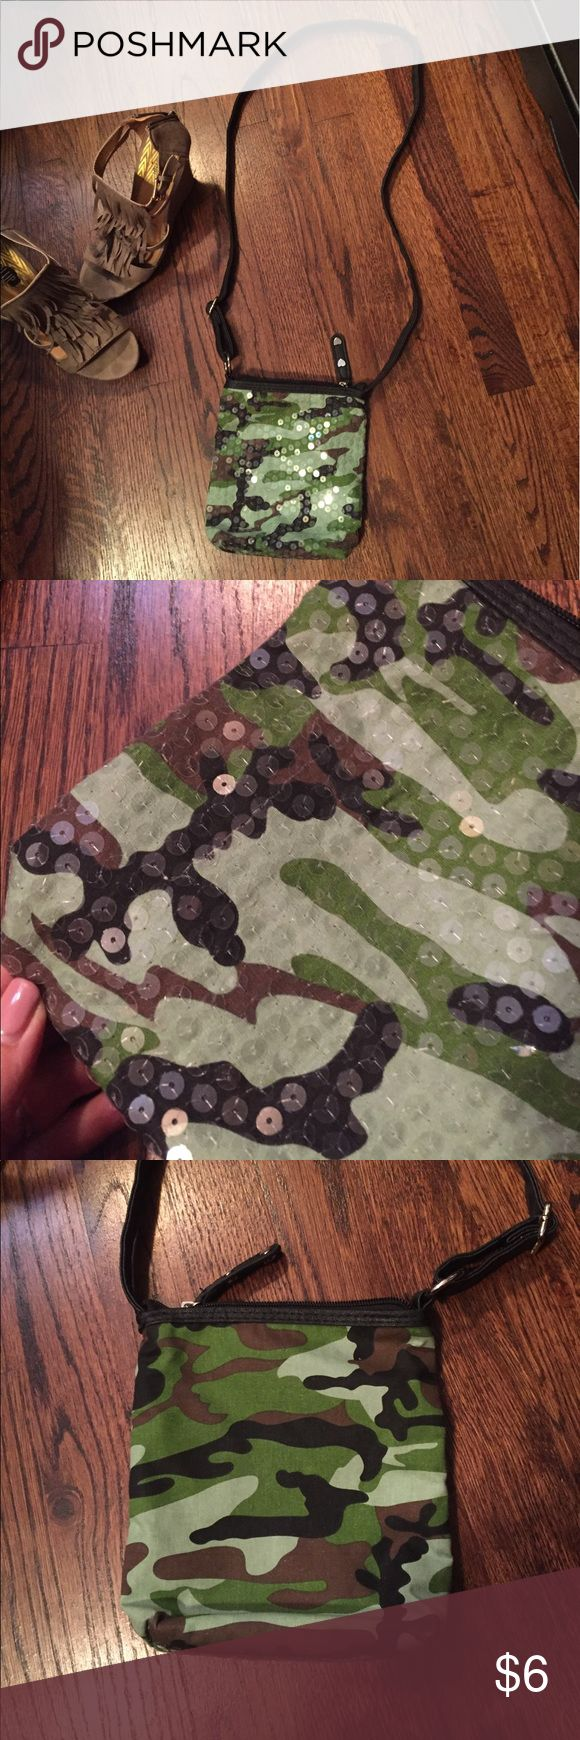 Crossbody Camo Bag w/clear sequin front The clear sequins add a femininity to the green camo bag. Bags Crossbody Bags